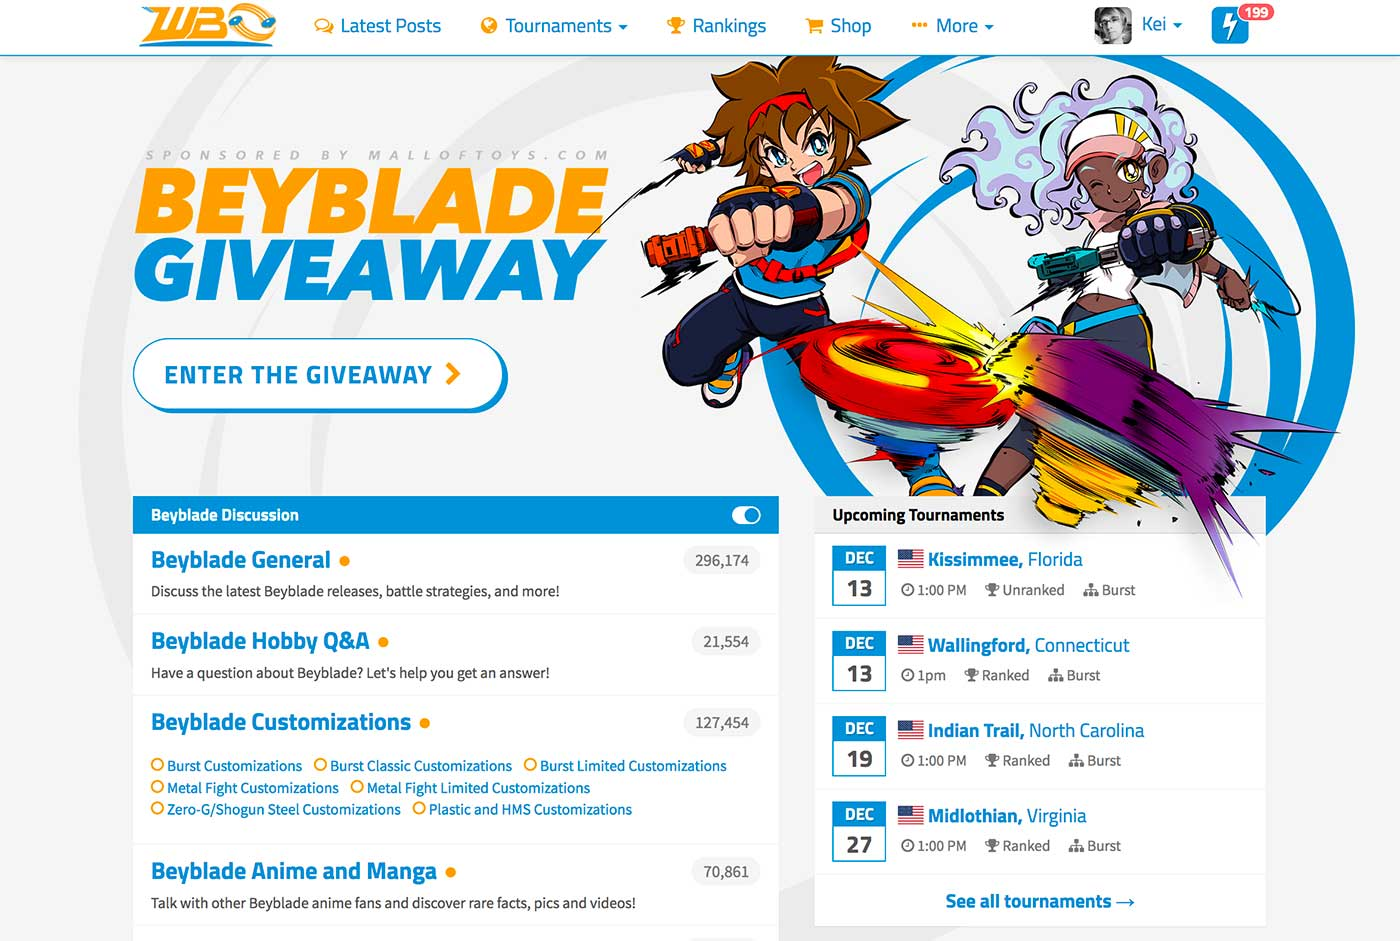 worldbeyblade.org website index screenshot showing forum categories and tournament listing